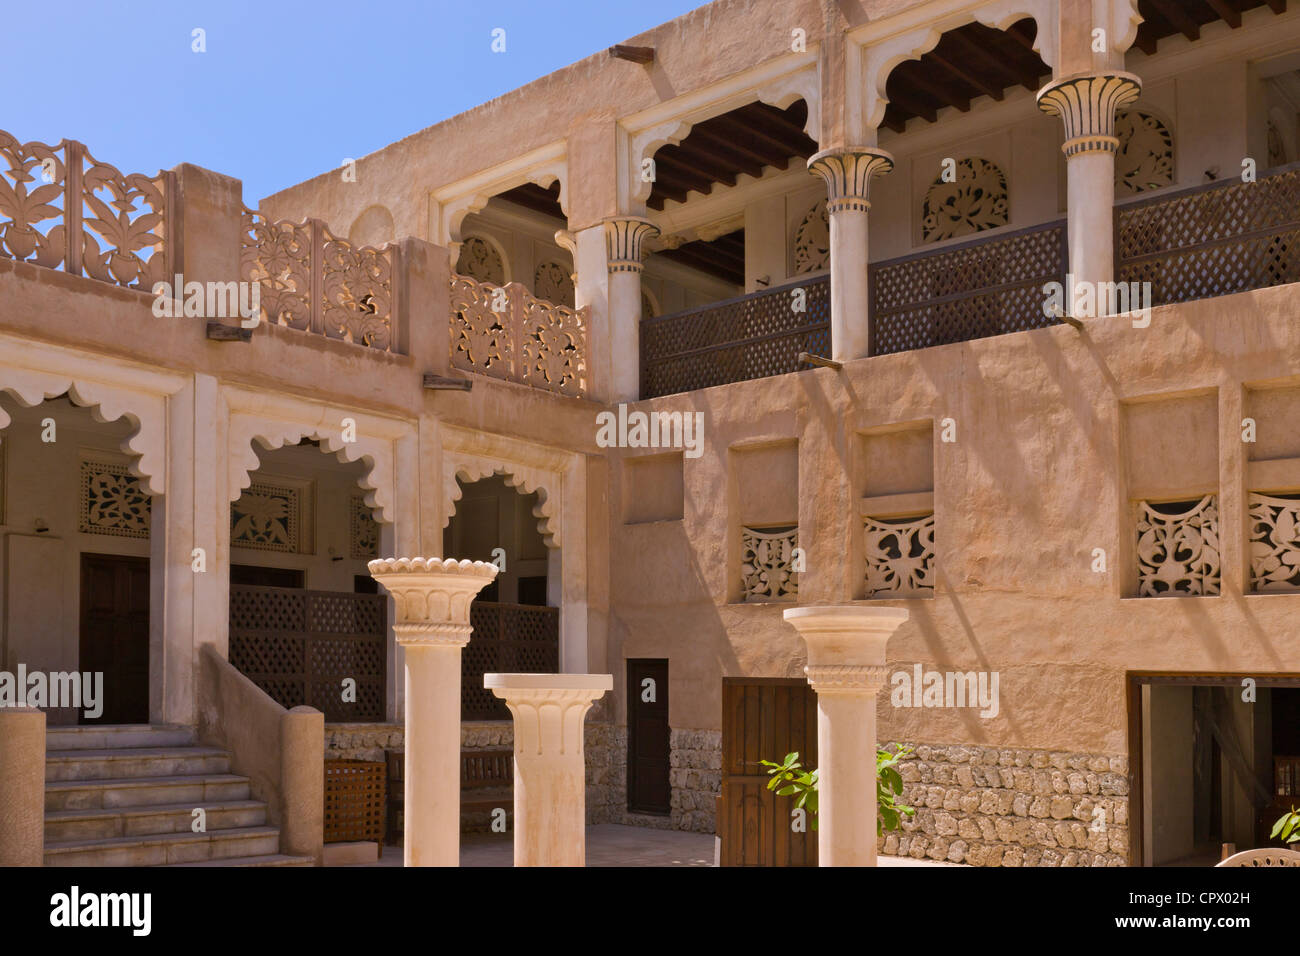 Traditional House In Bastakia Quarter Old Town Dubai Uae Stock Photo Royalty Free Image